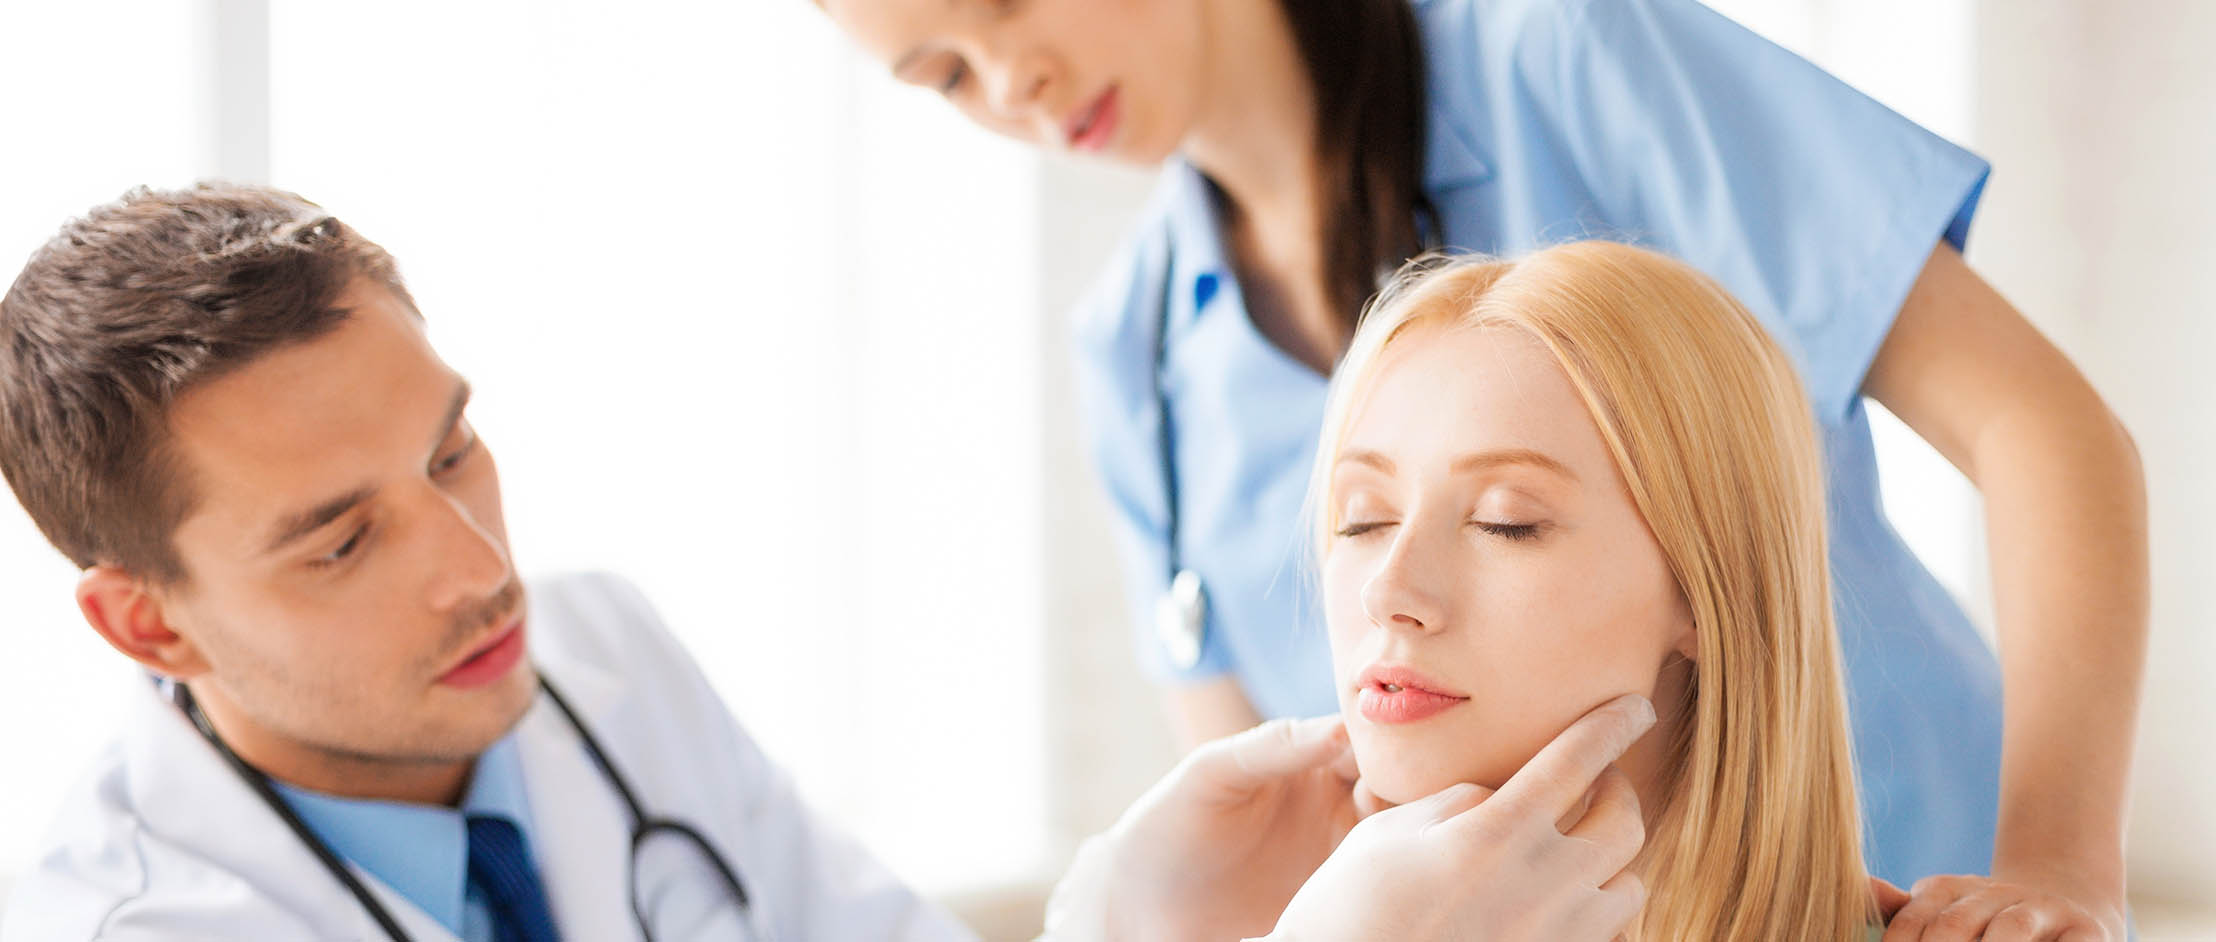 Medical Aesthetics Jobs Growing with the Industry